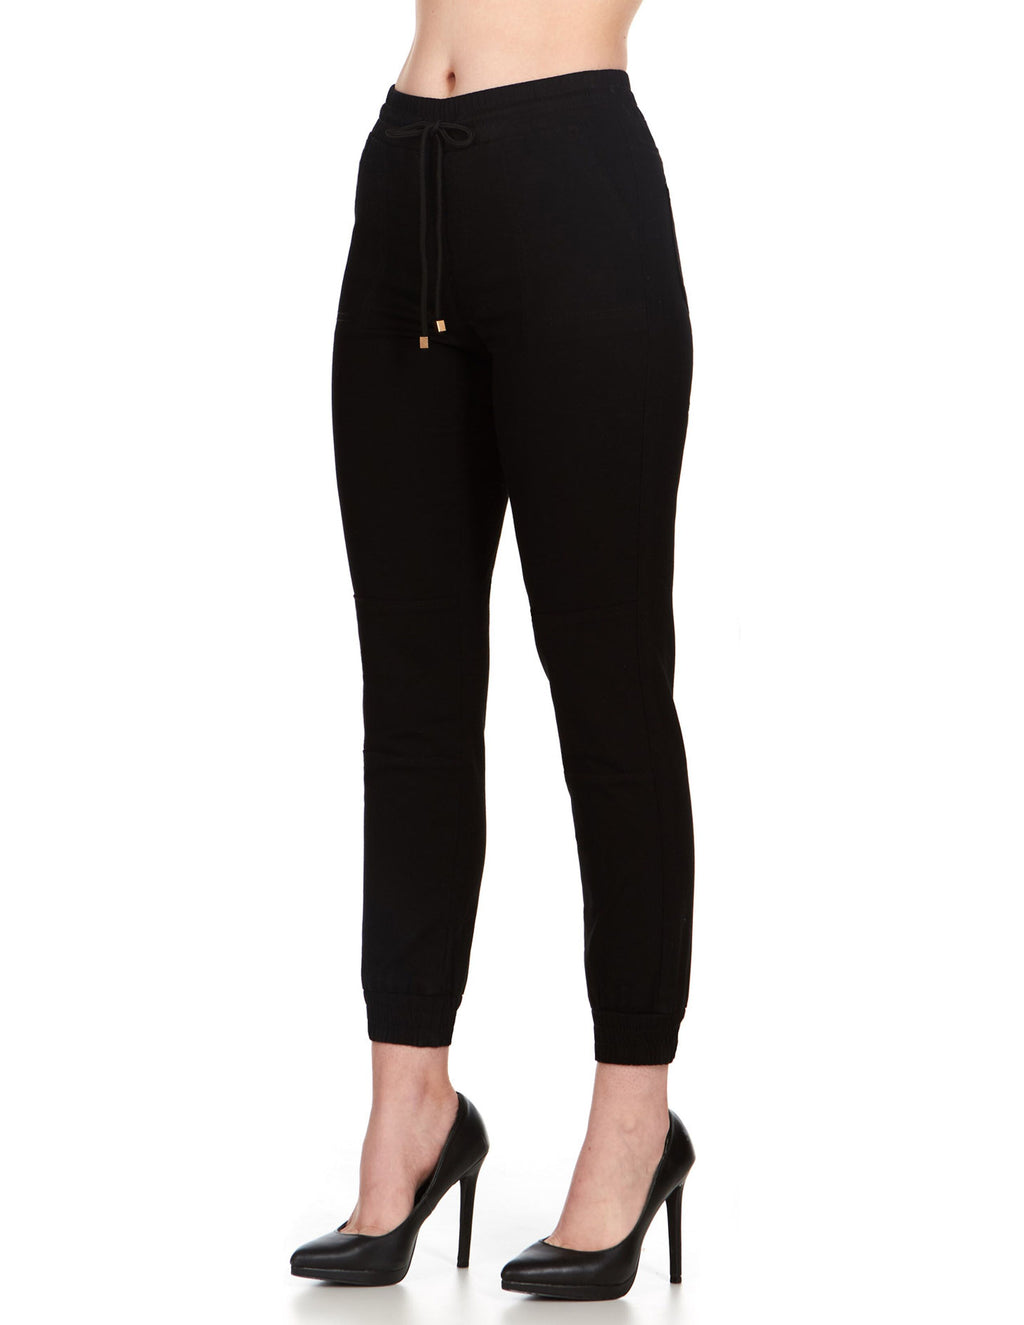 ELITE JEANS High Waisted Pull-On Jogger Women | Black/Neon Pink (P19636-01)